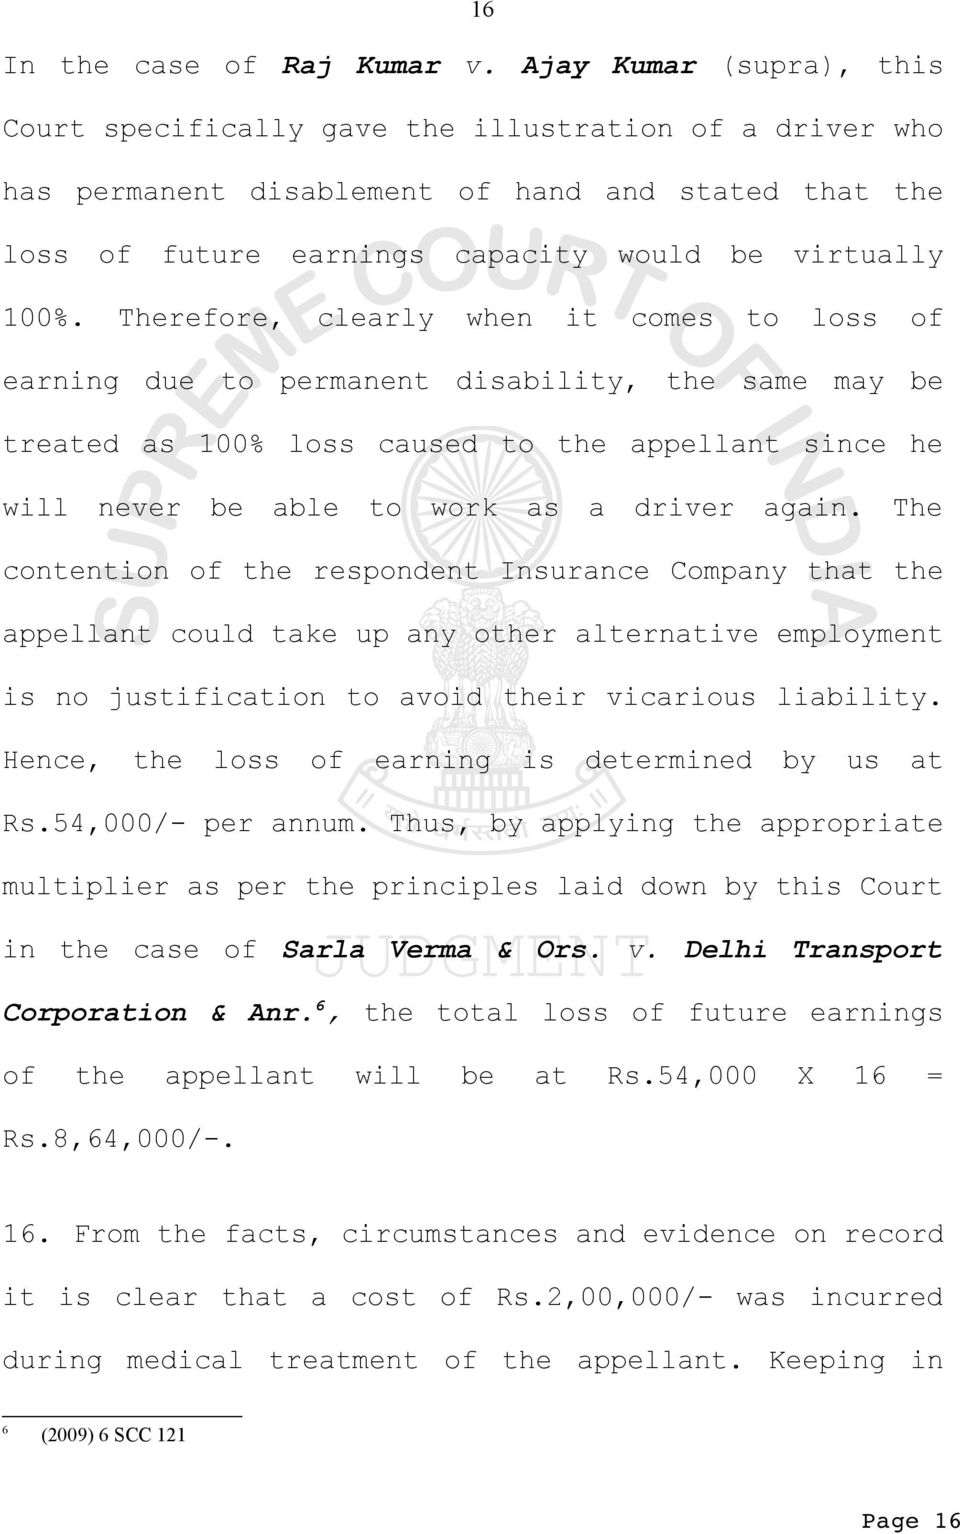 Therefore, clearly when it comes to loss of earning due to permanent disability, the same may be treated as 100% loss caused to the appellant since he will never be able to work as a driver again.